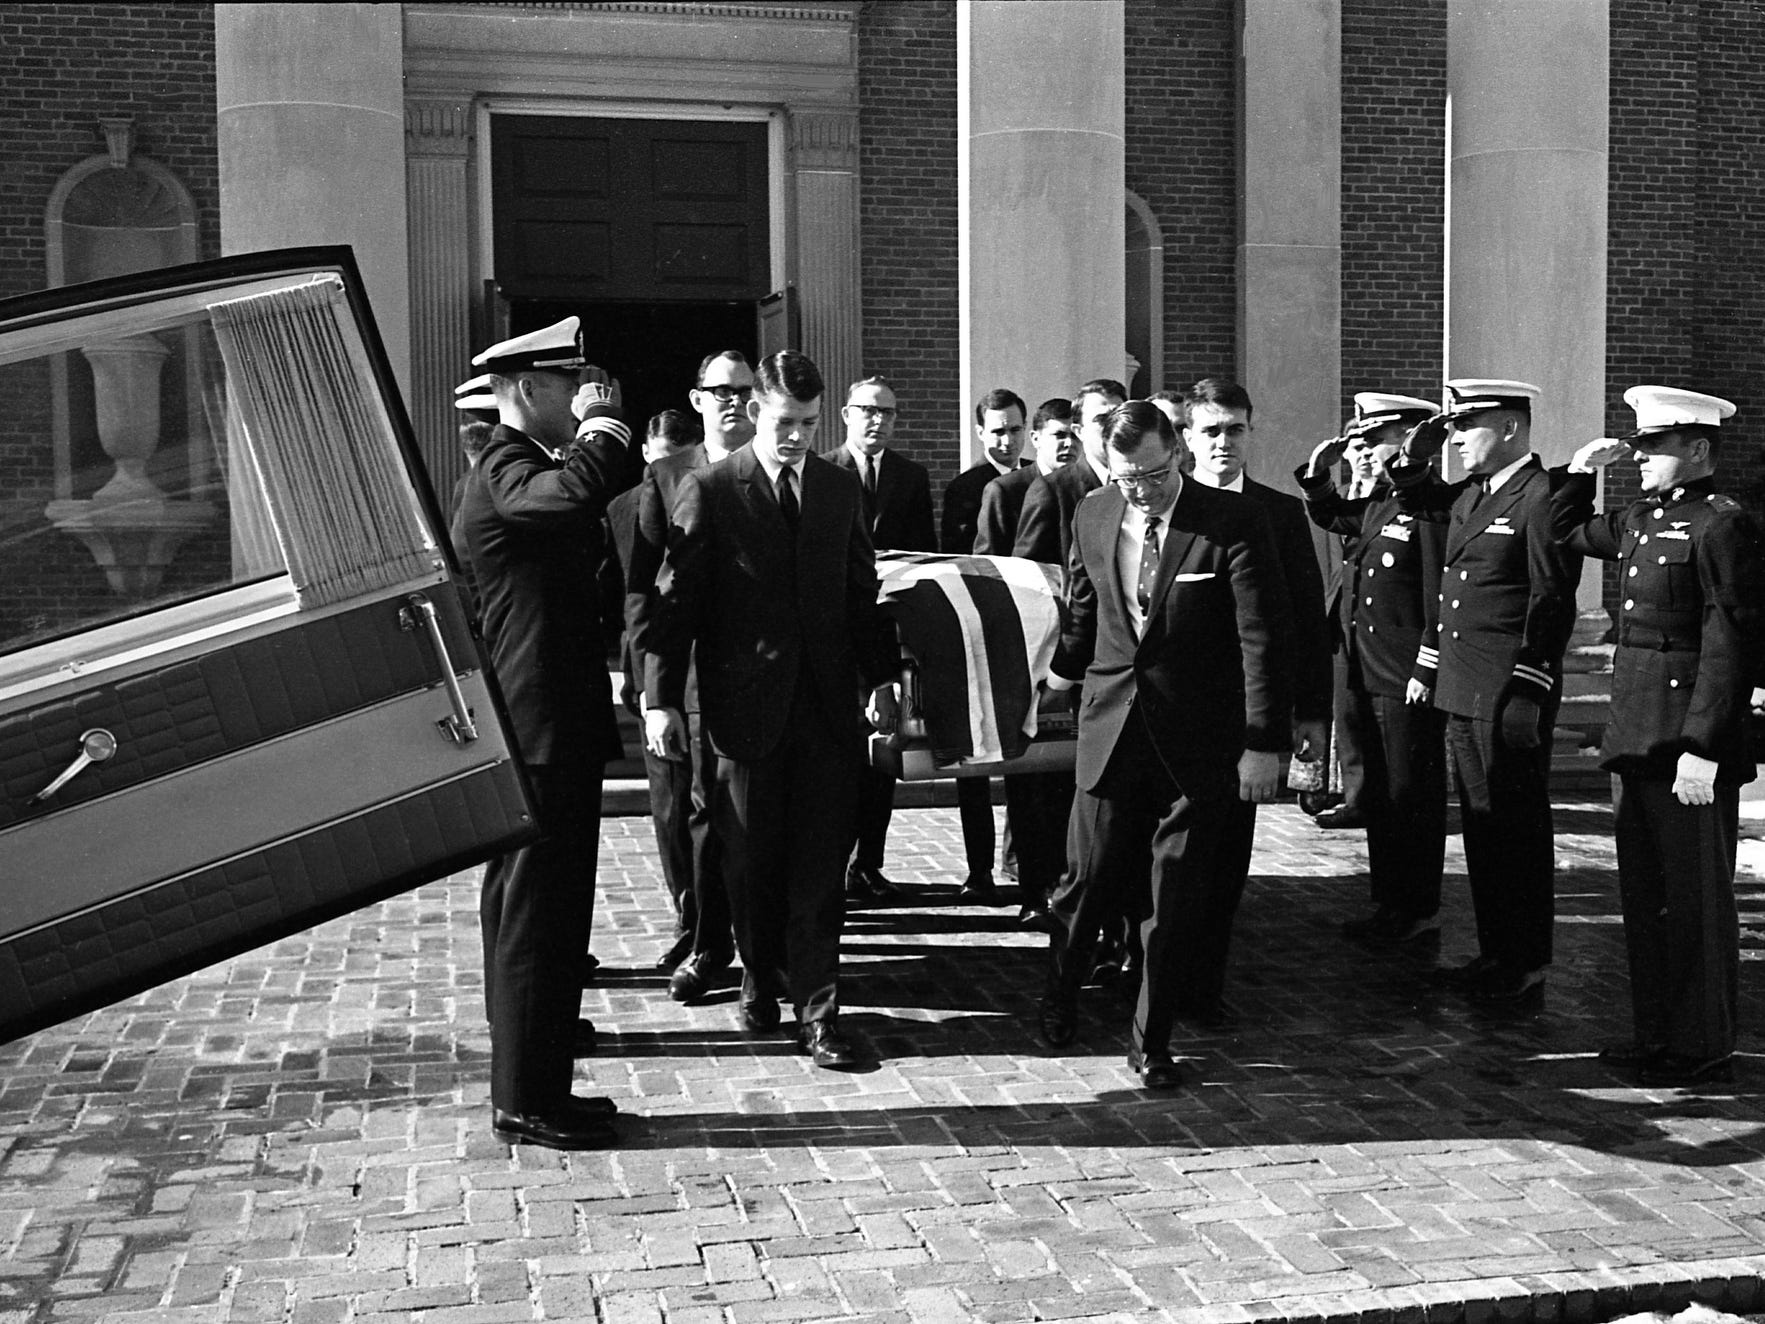 The six remaining members and the commander of the Navy's Blue Angel precision flying team salute their fallen member, William F. Worley, after services at First Presbyterian Church in Nashville on Jan. 18, 1968. Worley, a native of Nashville, died Jan. 14 when his F11A Tiger jet crashed in a Southern California desert during winter training at the naval air facility at El Centro.